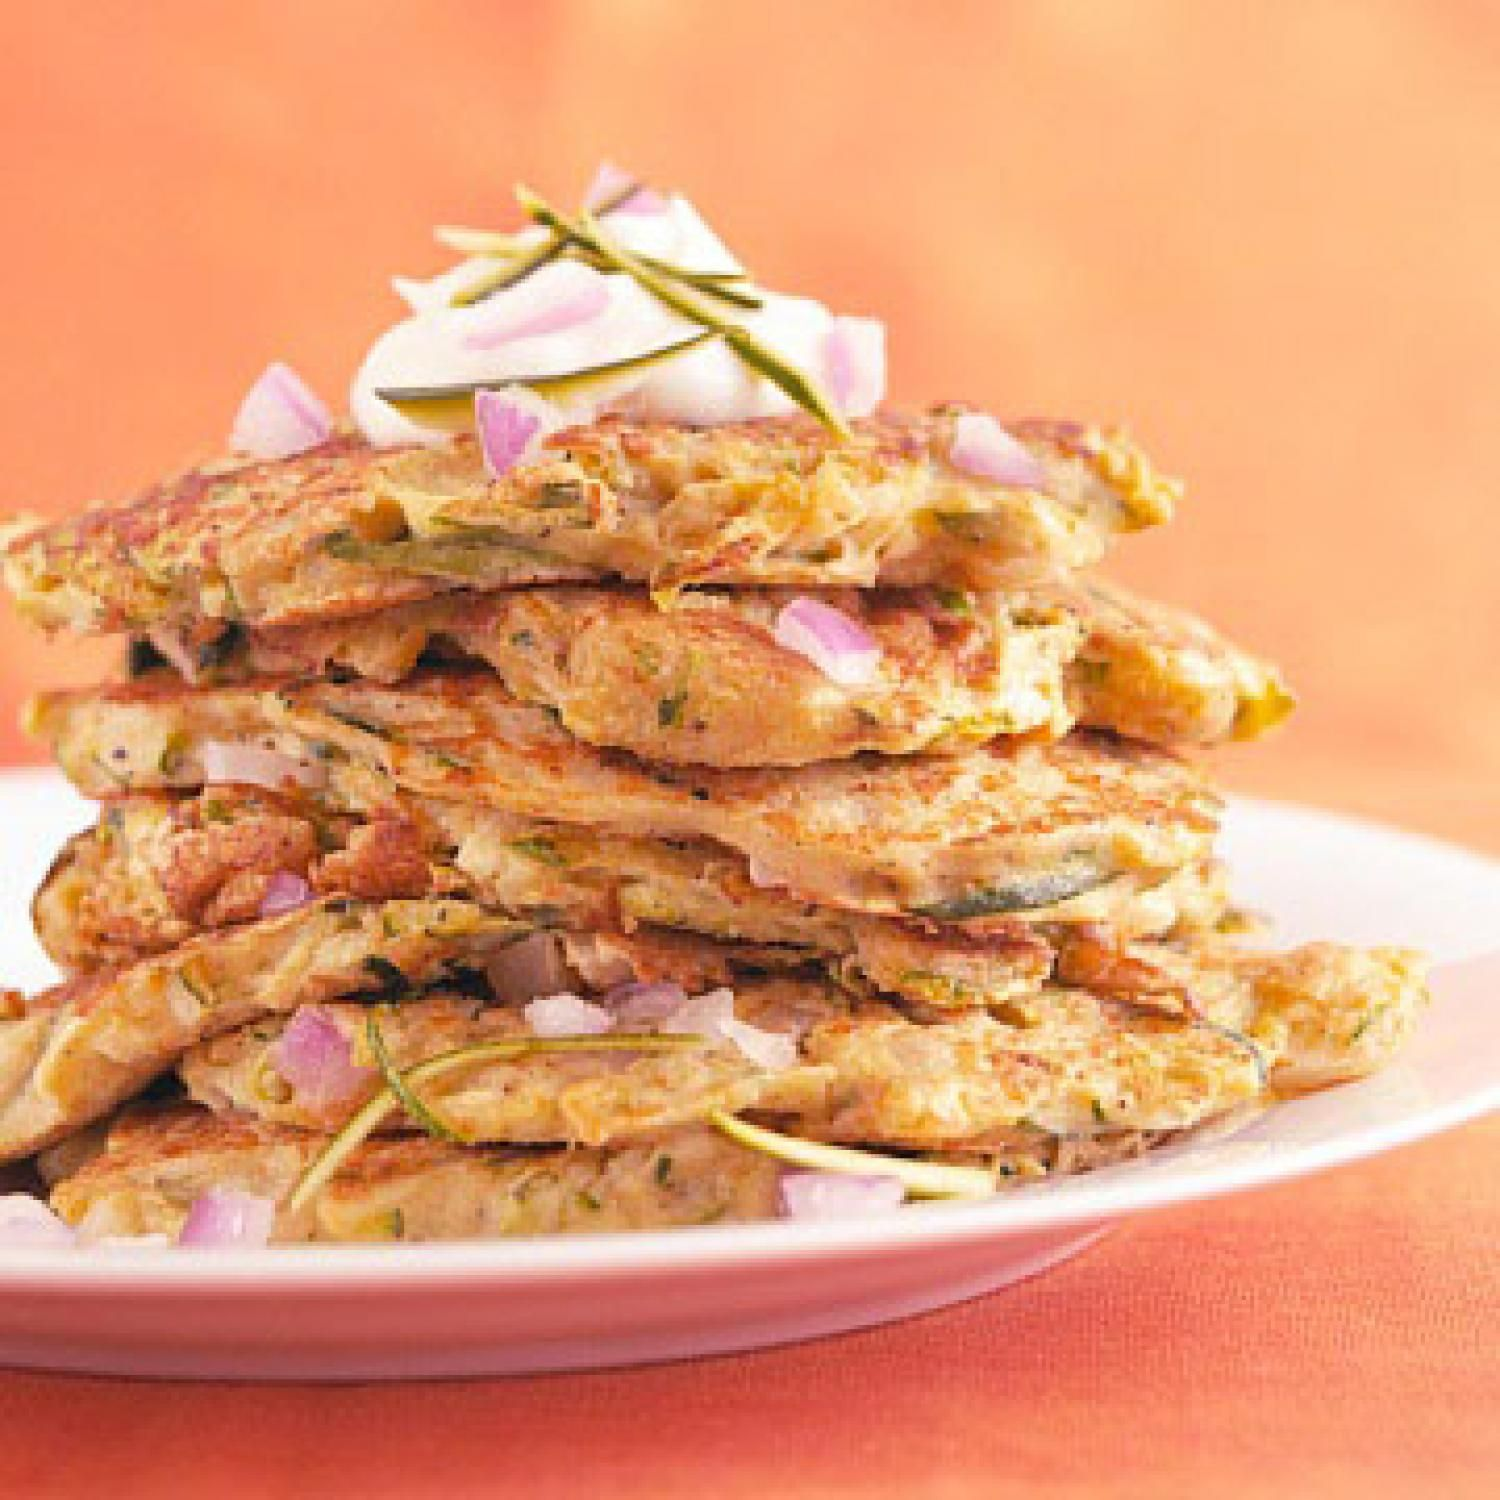 Best loved zucchini recipes zucchini pancakes and diabetic recipes best snacks recipes for diabetics type 1type 2 r124620g forumfinder Gallery